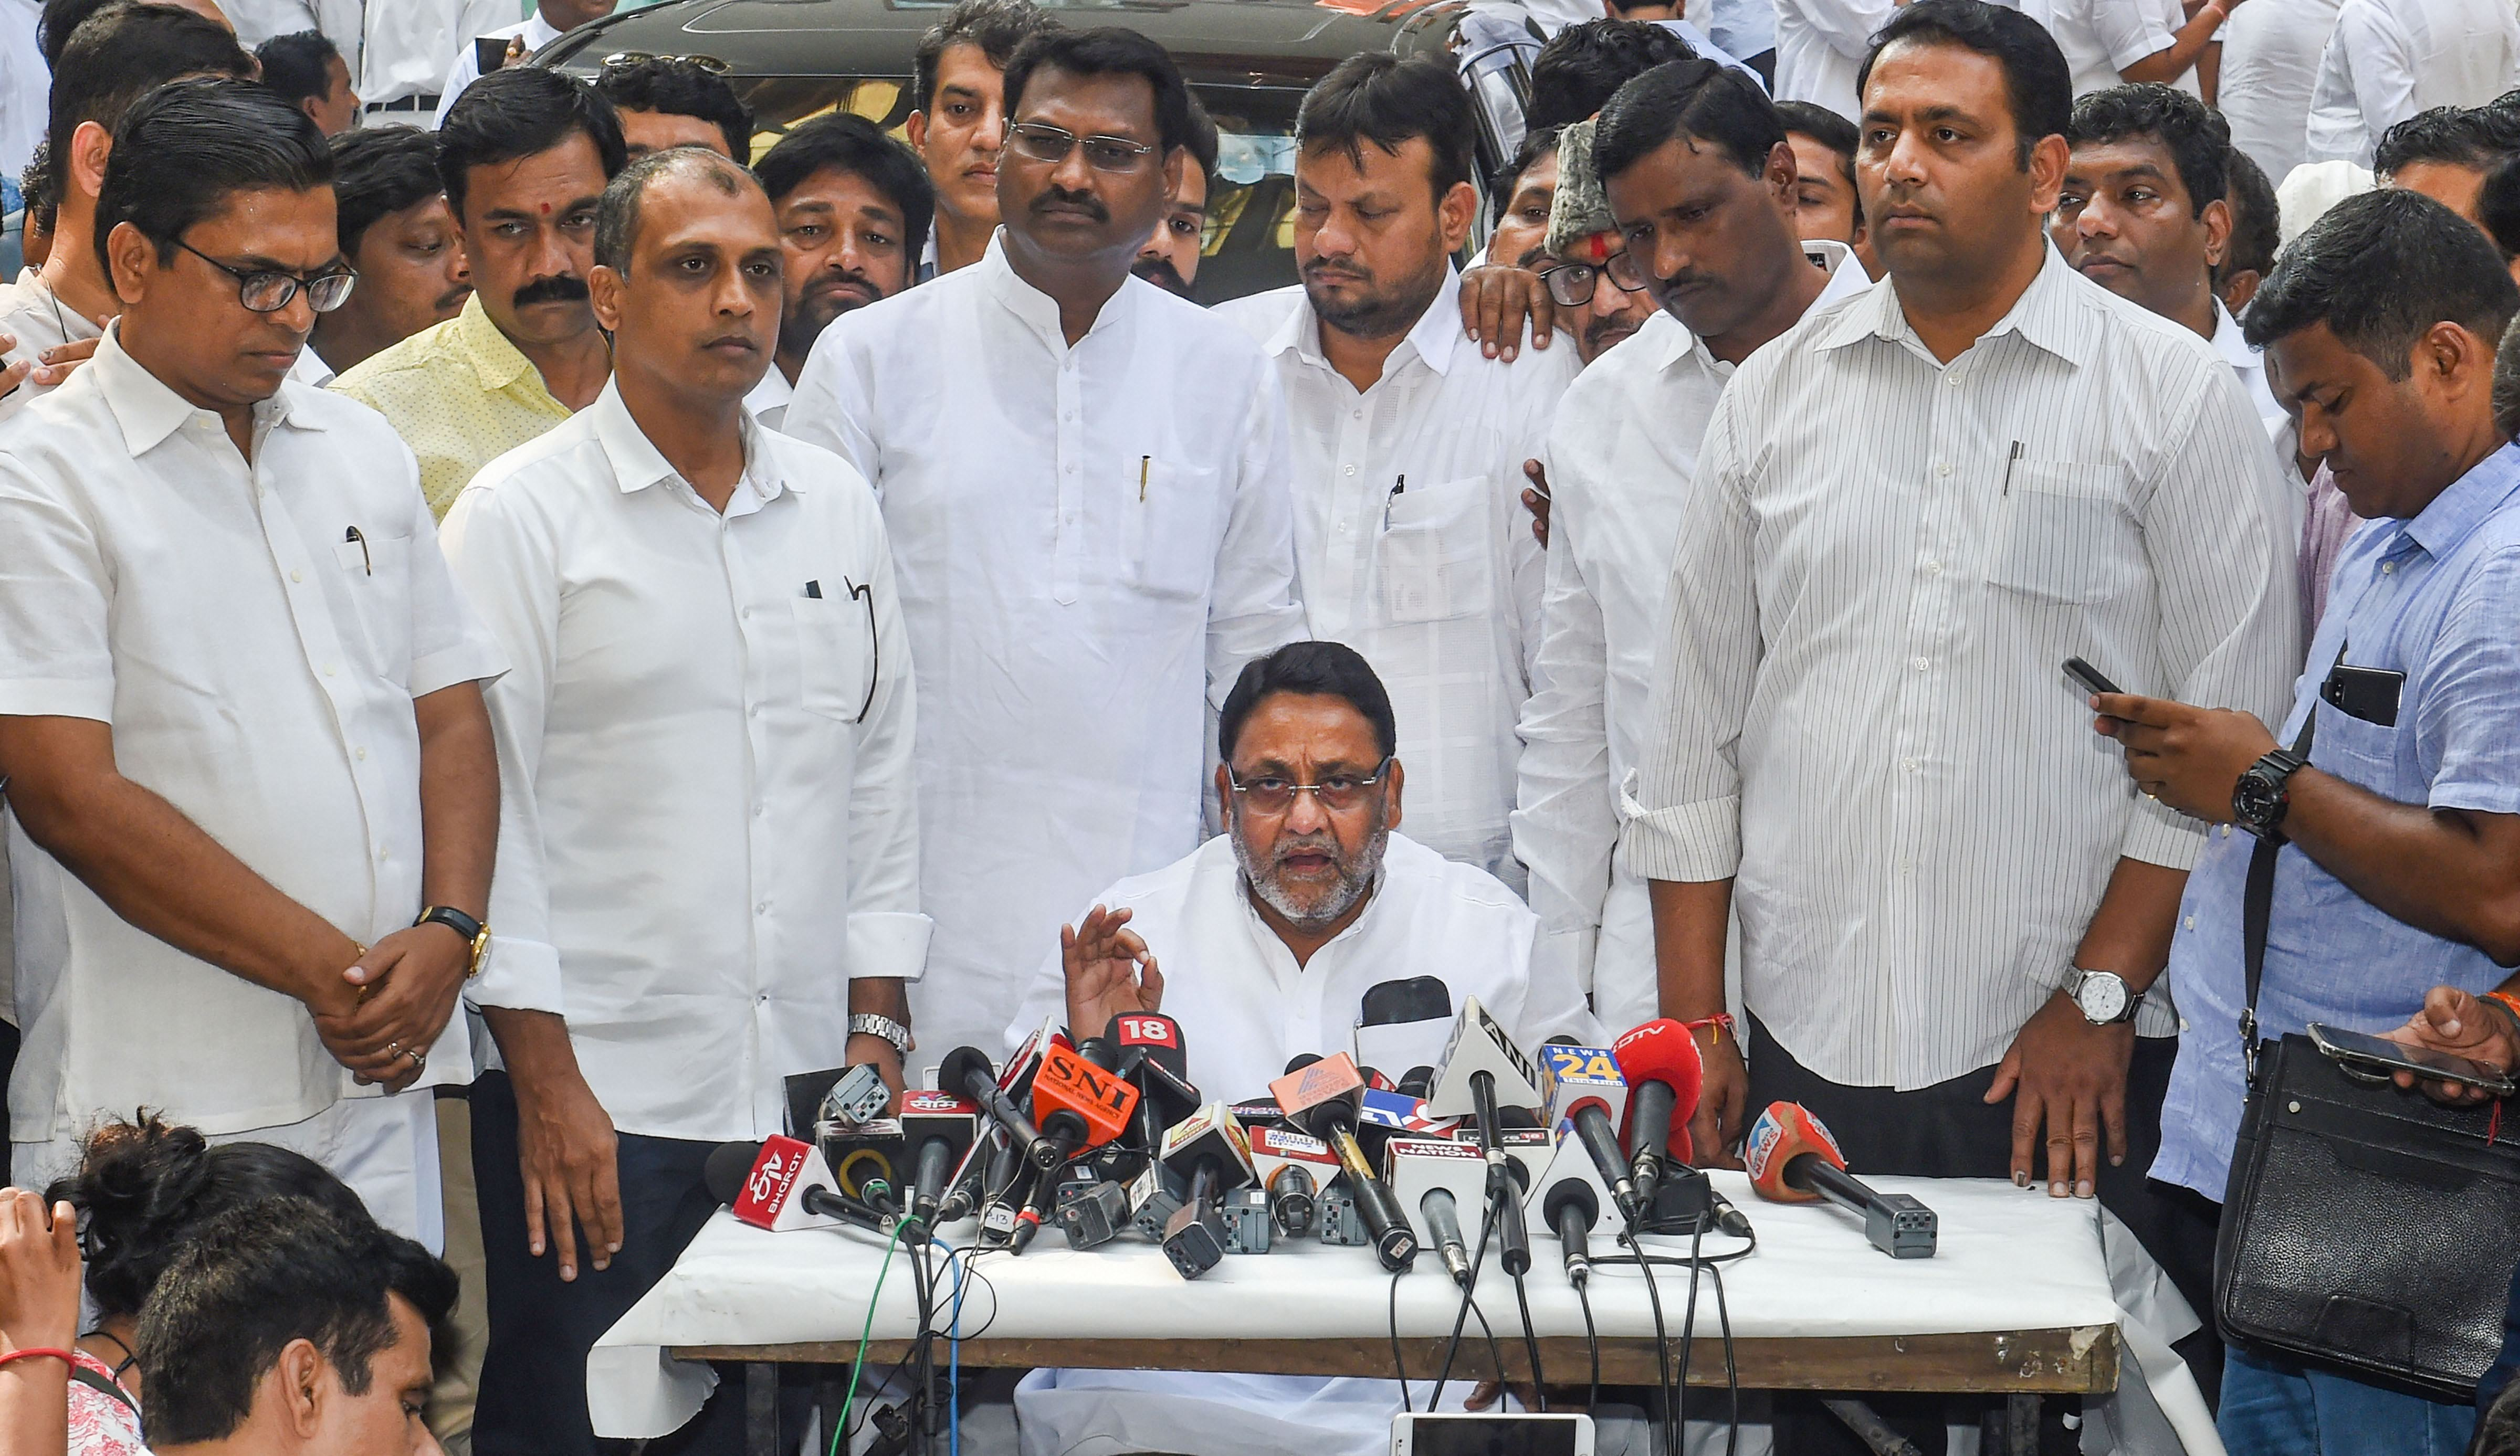 NCP chief spokesman Nawab Malik also said the Congress must be a part of the government to ensure its stability